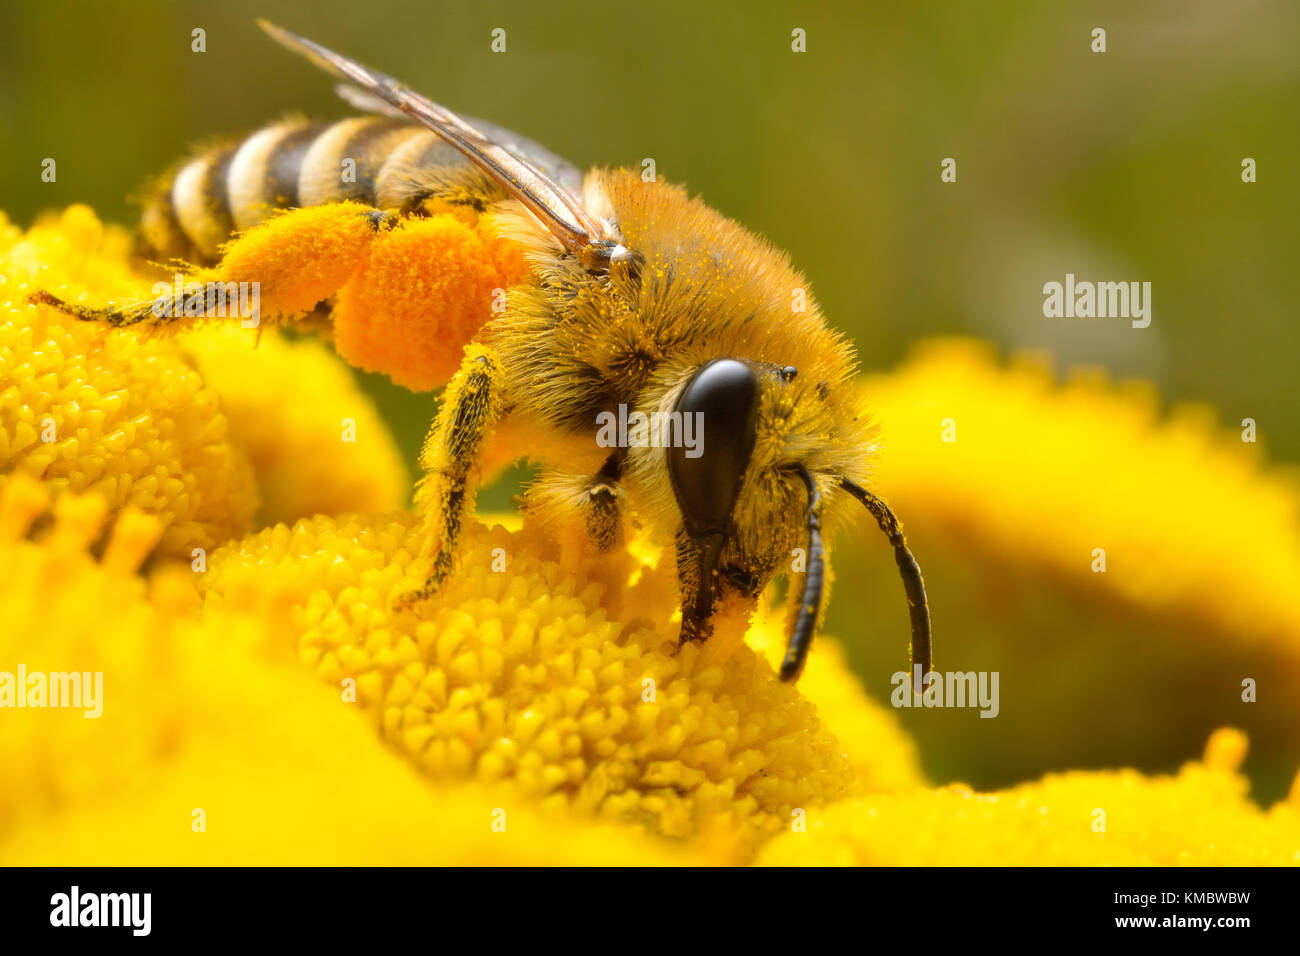 Bee on the yellow flowr - Stock Image